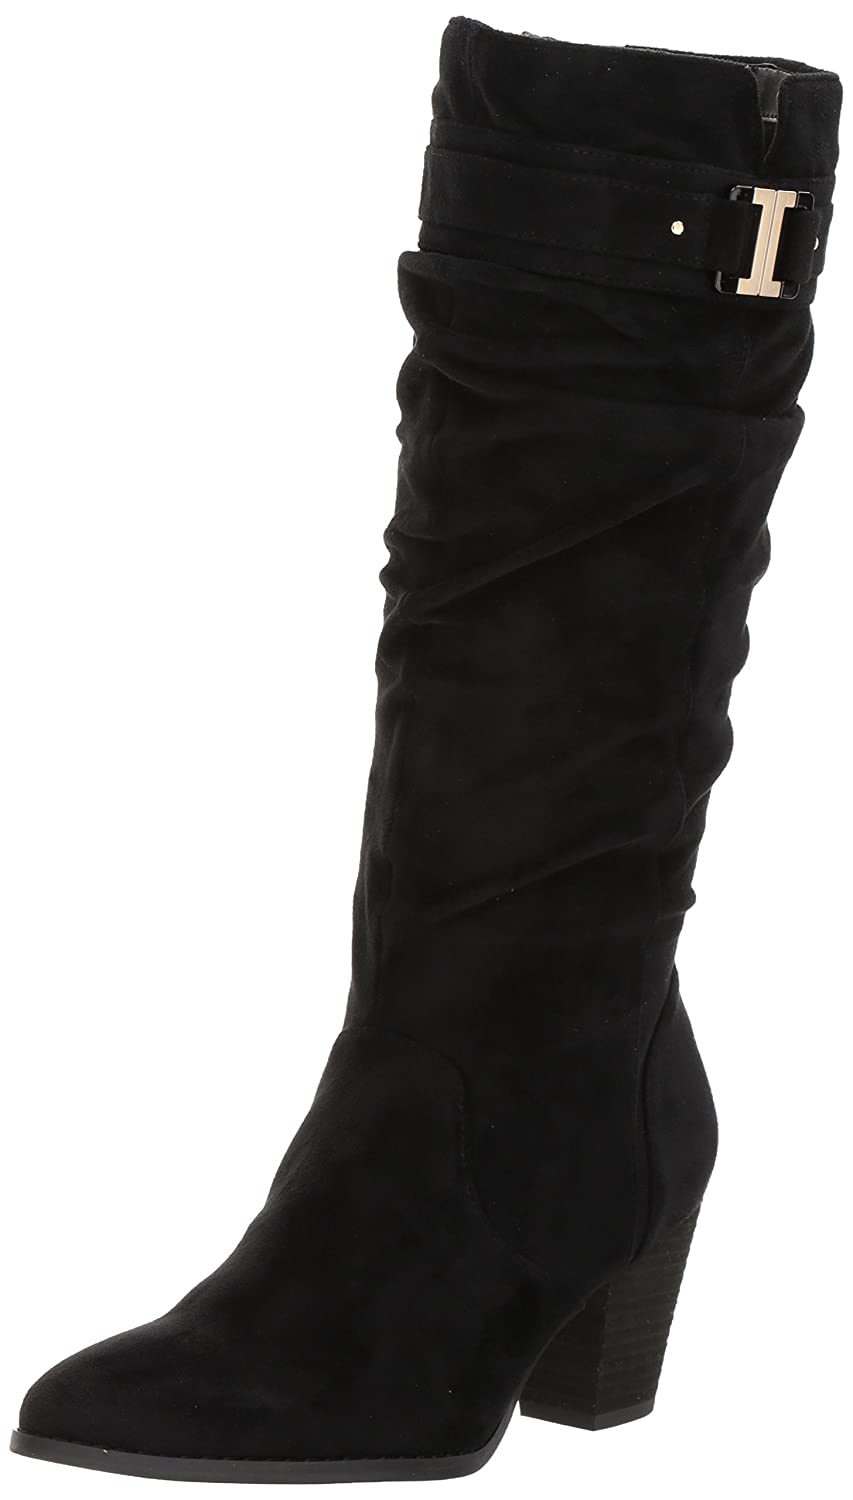 8966aaa3b3277 Dr. Scholl's Shoes Women's Devote Riding Boot